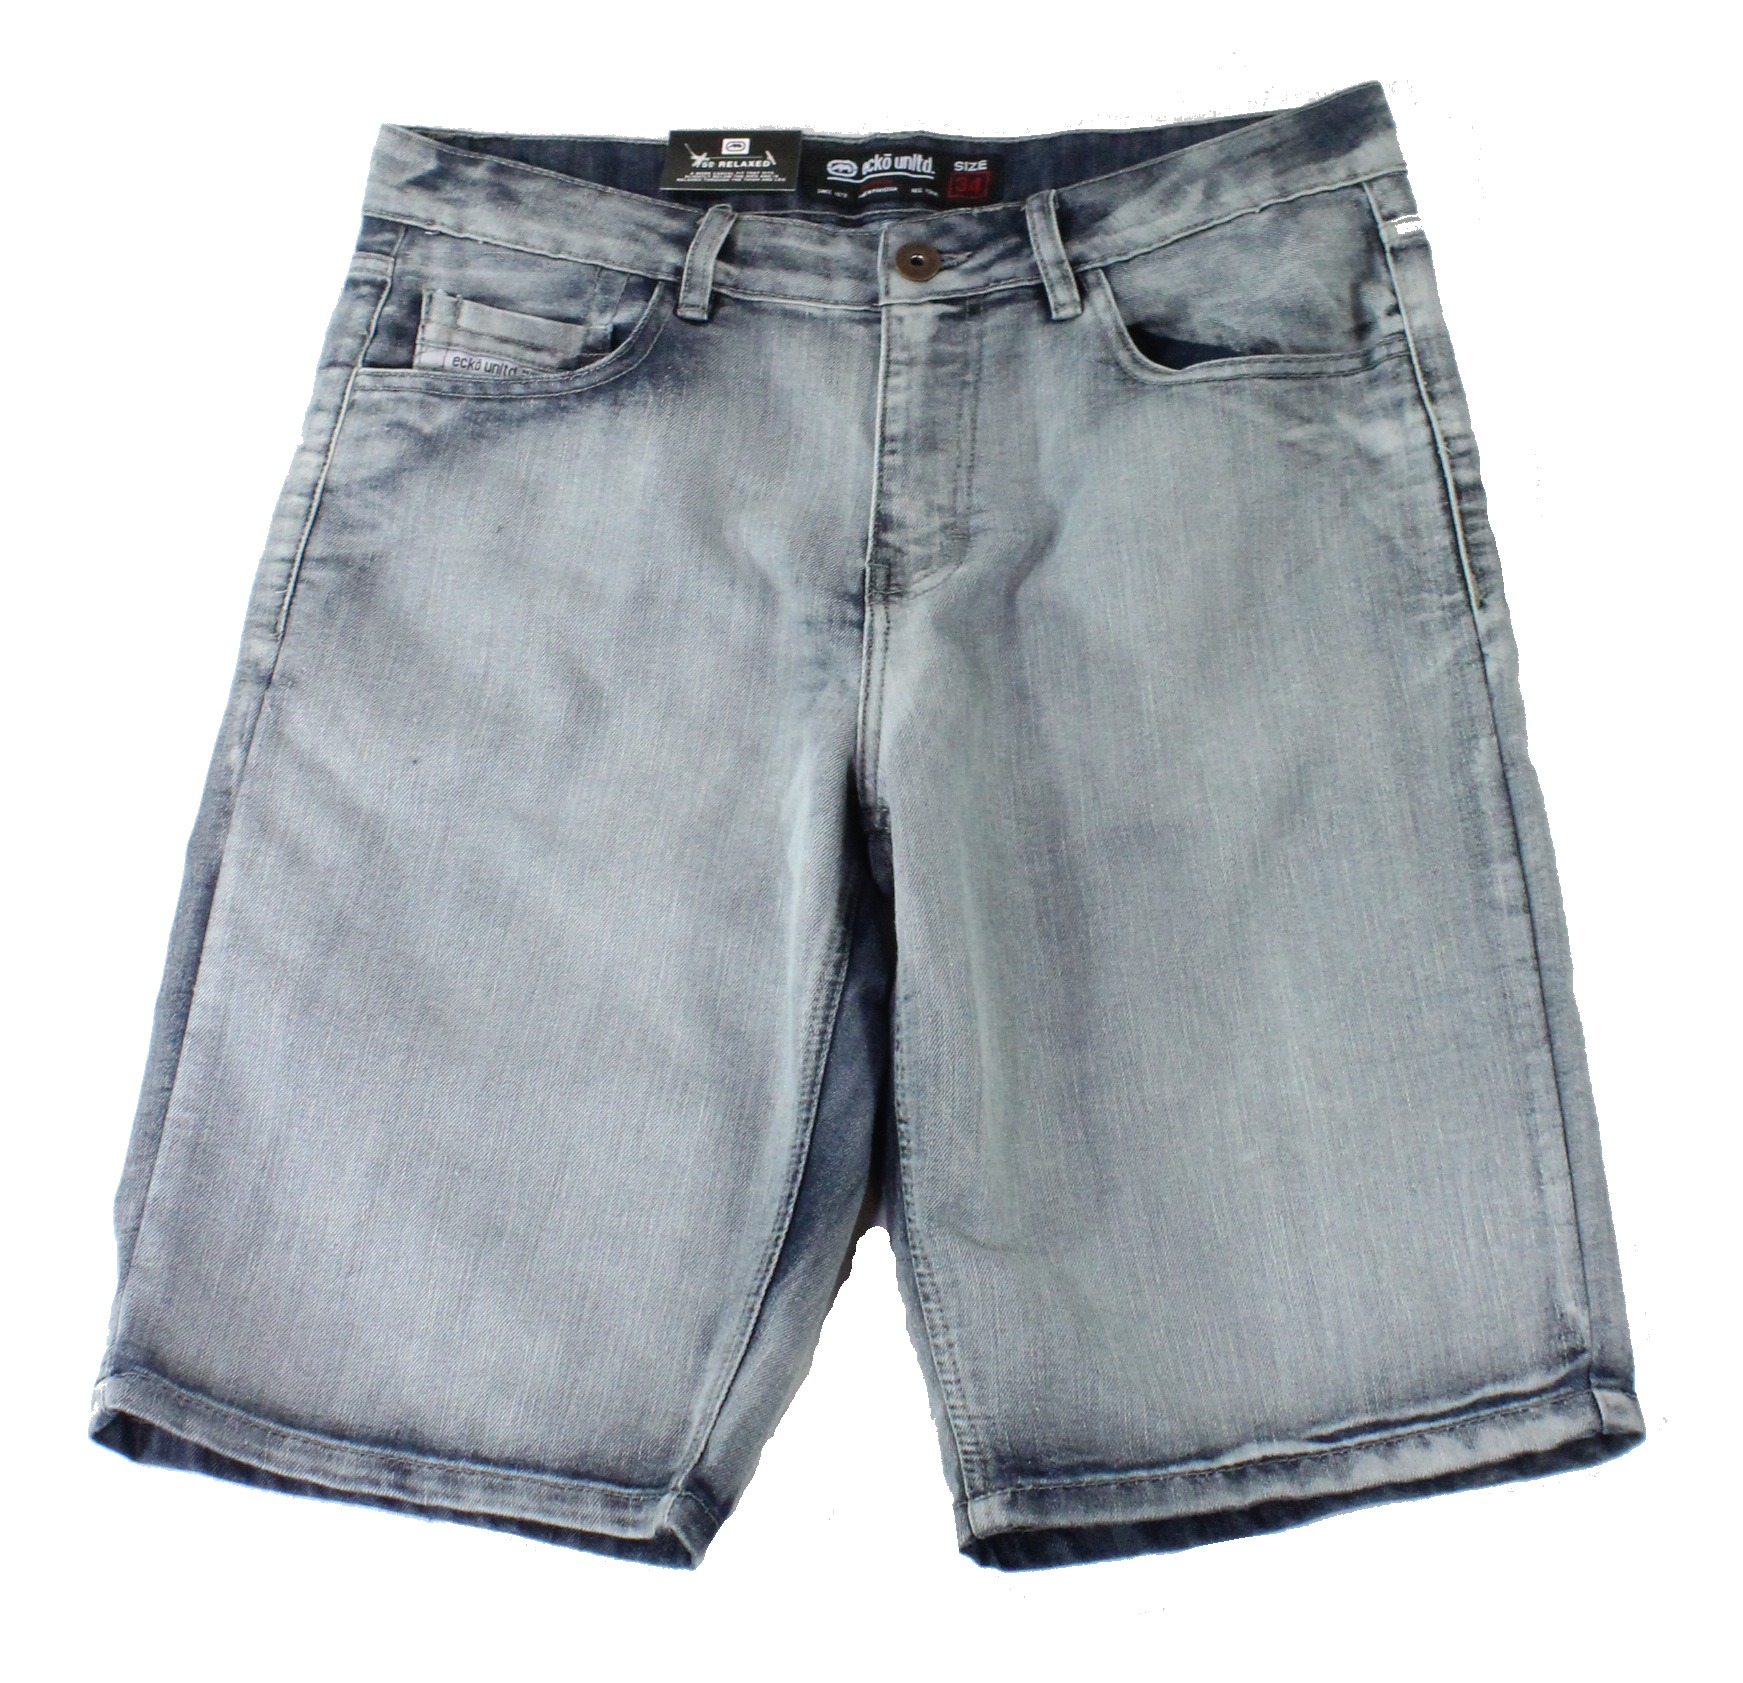 New-Ecko-Unltd-Mens-Shorts-Washed-Blue-Size-34-Denim-759-Relaxed-Fit-48-209